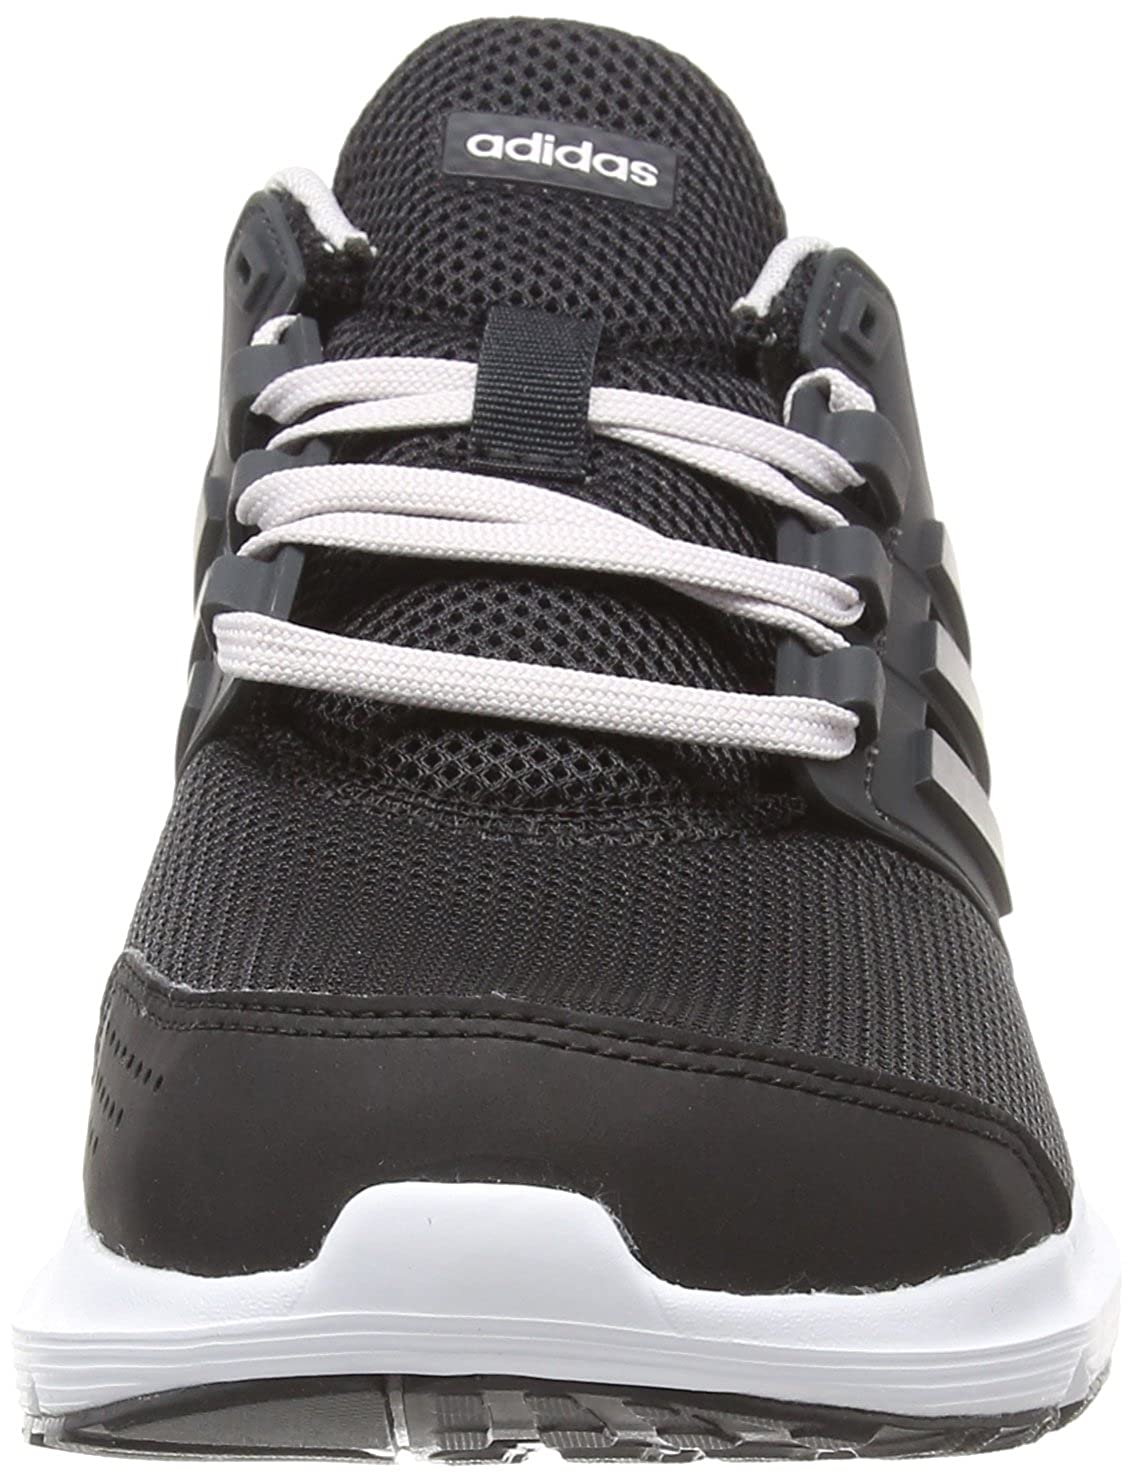 adidas Women's Galaxy 4 Competition Running Shoes